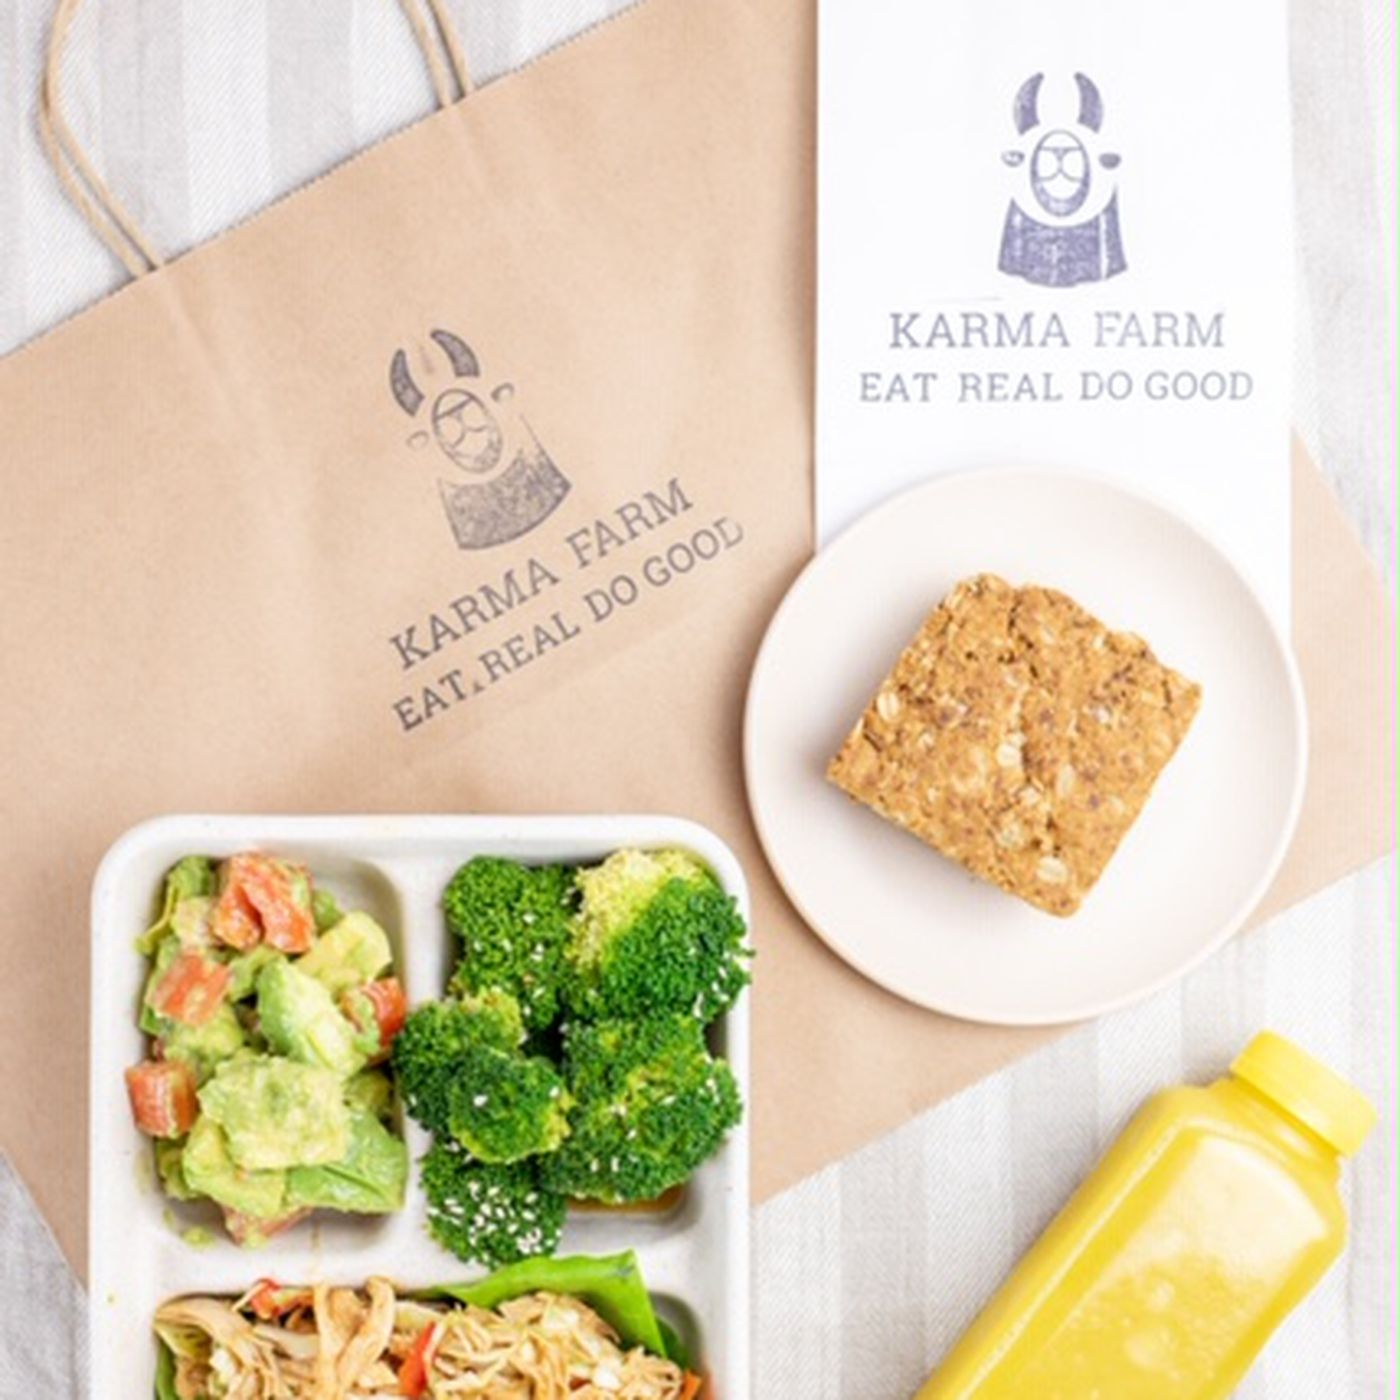 Health Focused Restaurant Karma Farm Reopens In The Former Holeman And Finch Public House Space On Peachtree Street In Buckhead Eater Atlanta